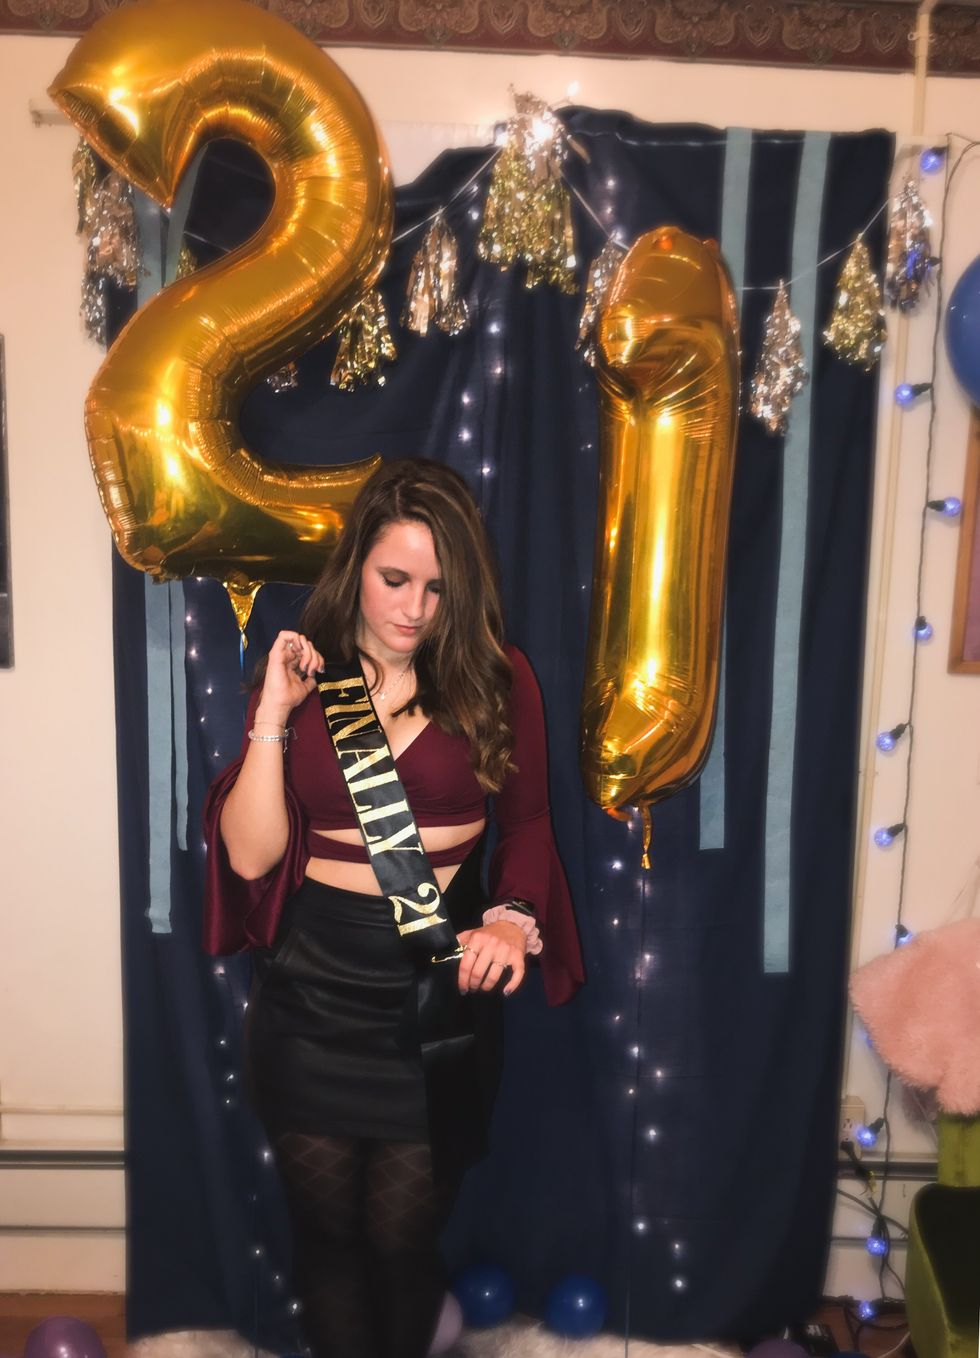 I Didn't 'Drink To Forget' My 21st Birthday, And I Couldn't Be Happier About That